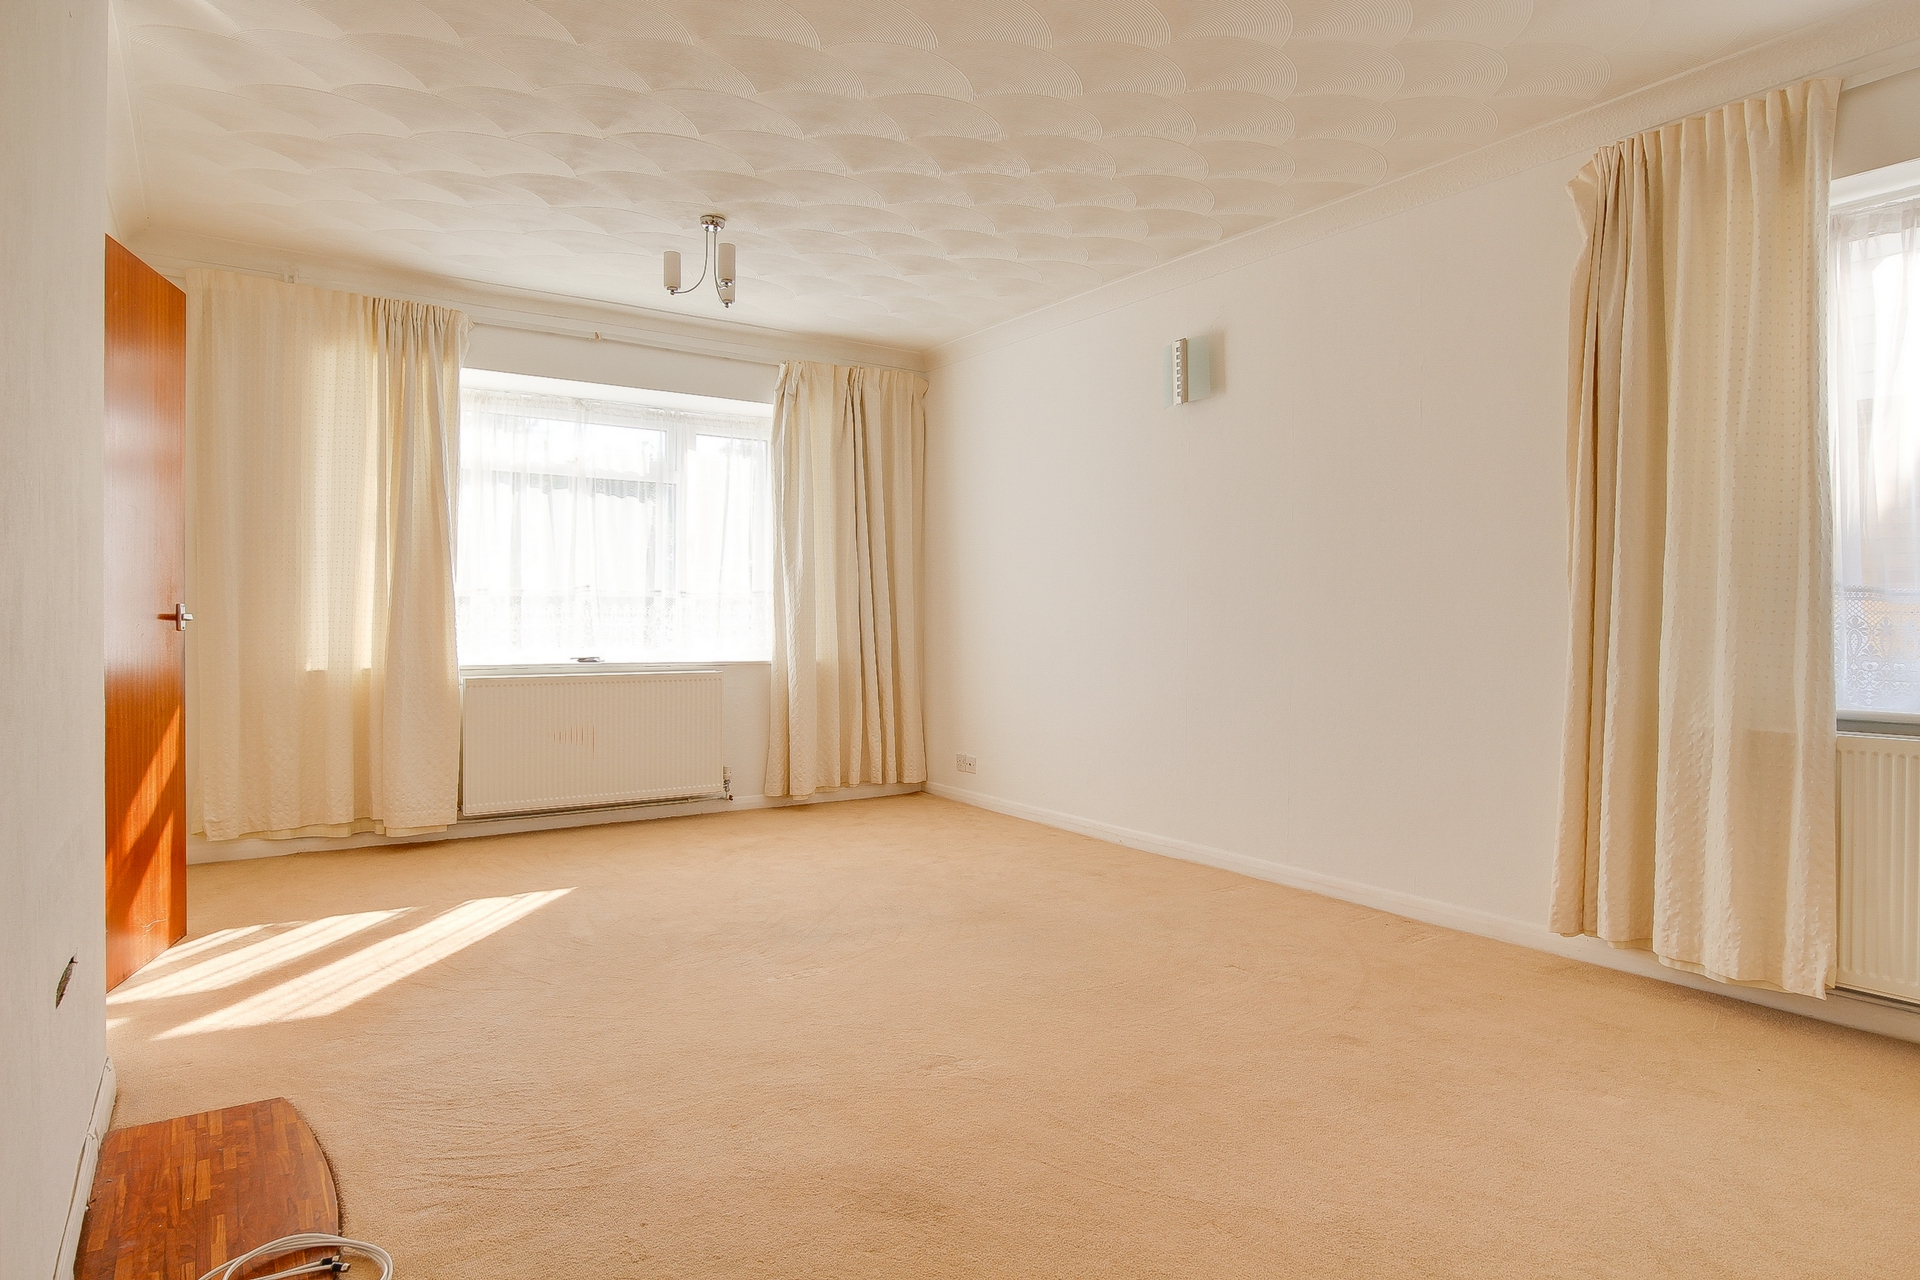 3 bed bungalow to rent in Cheesmans Close, Minster, CT12 6